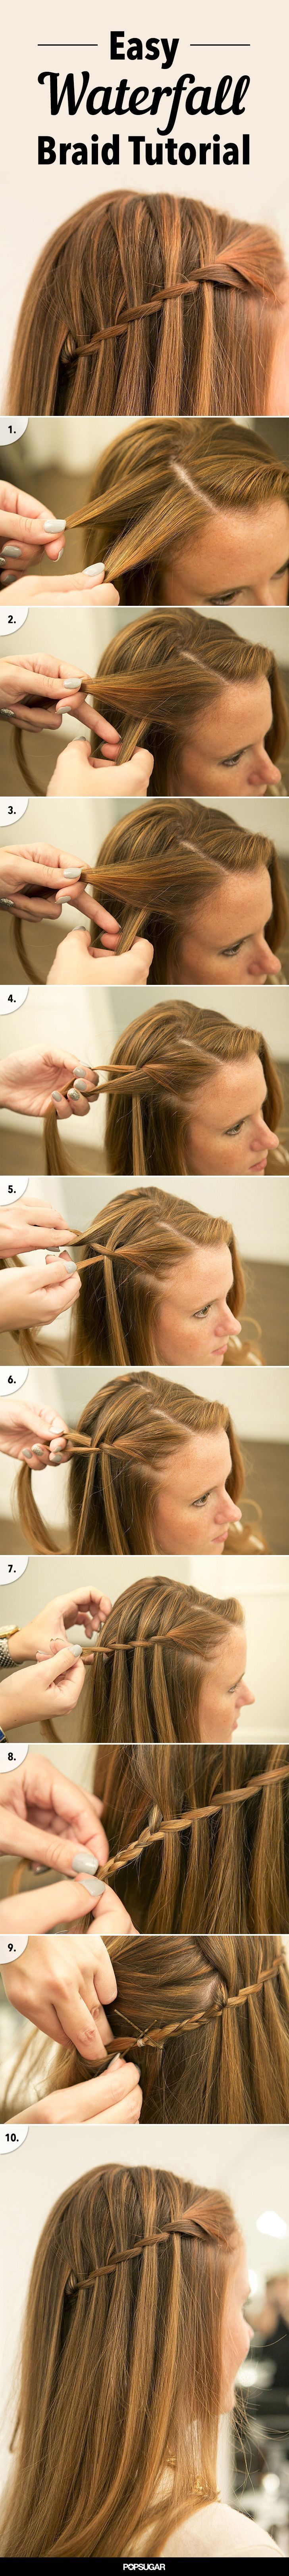 15 simple braid tutorials you've never tried